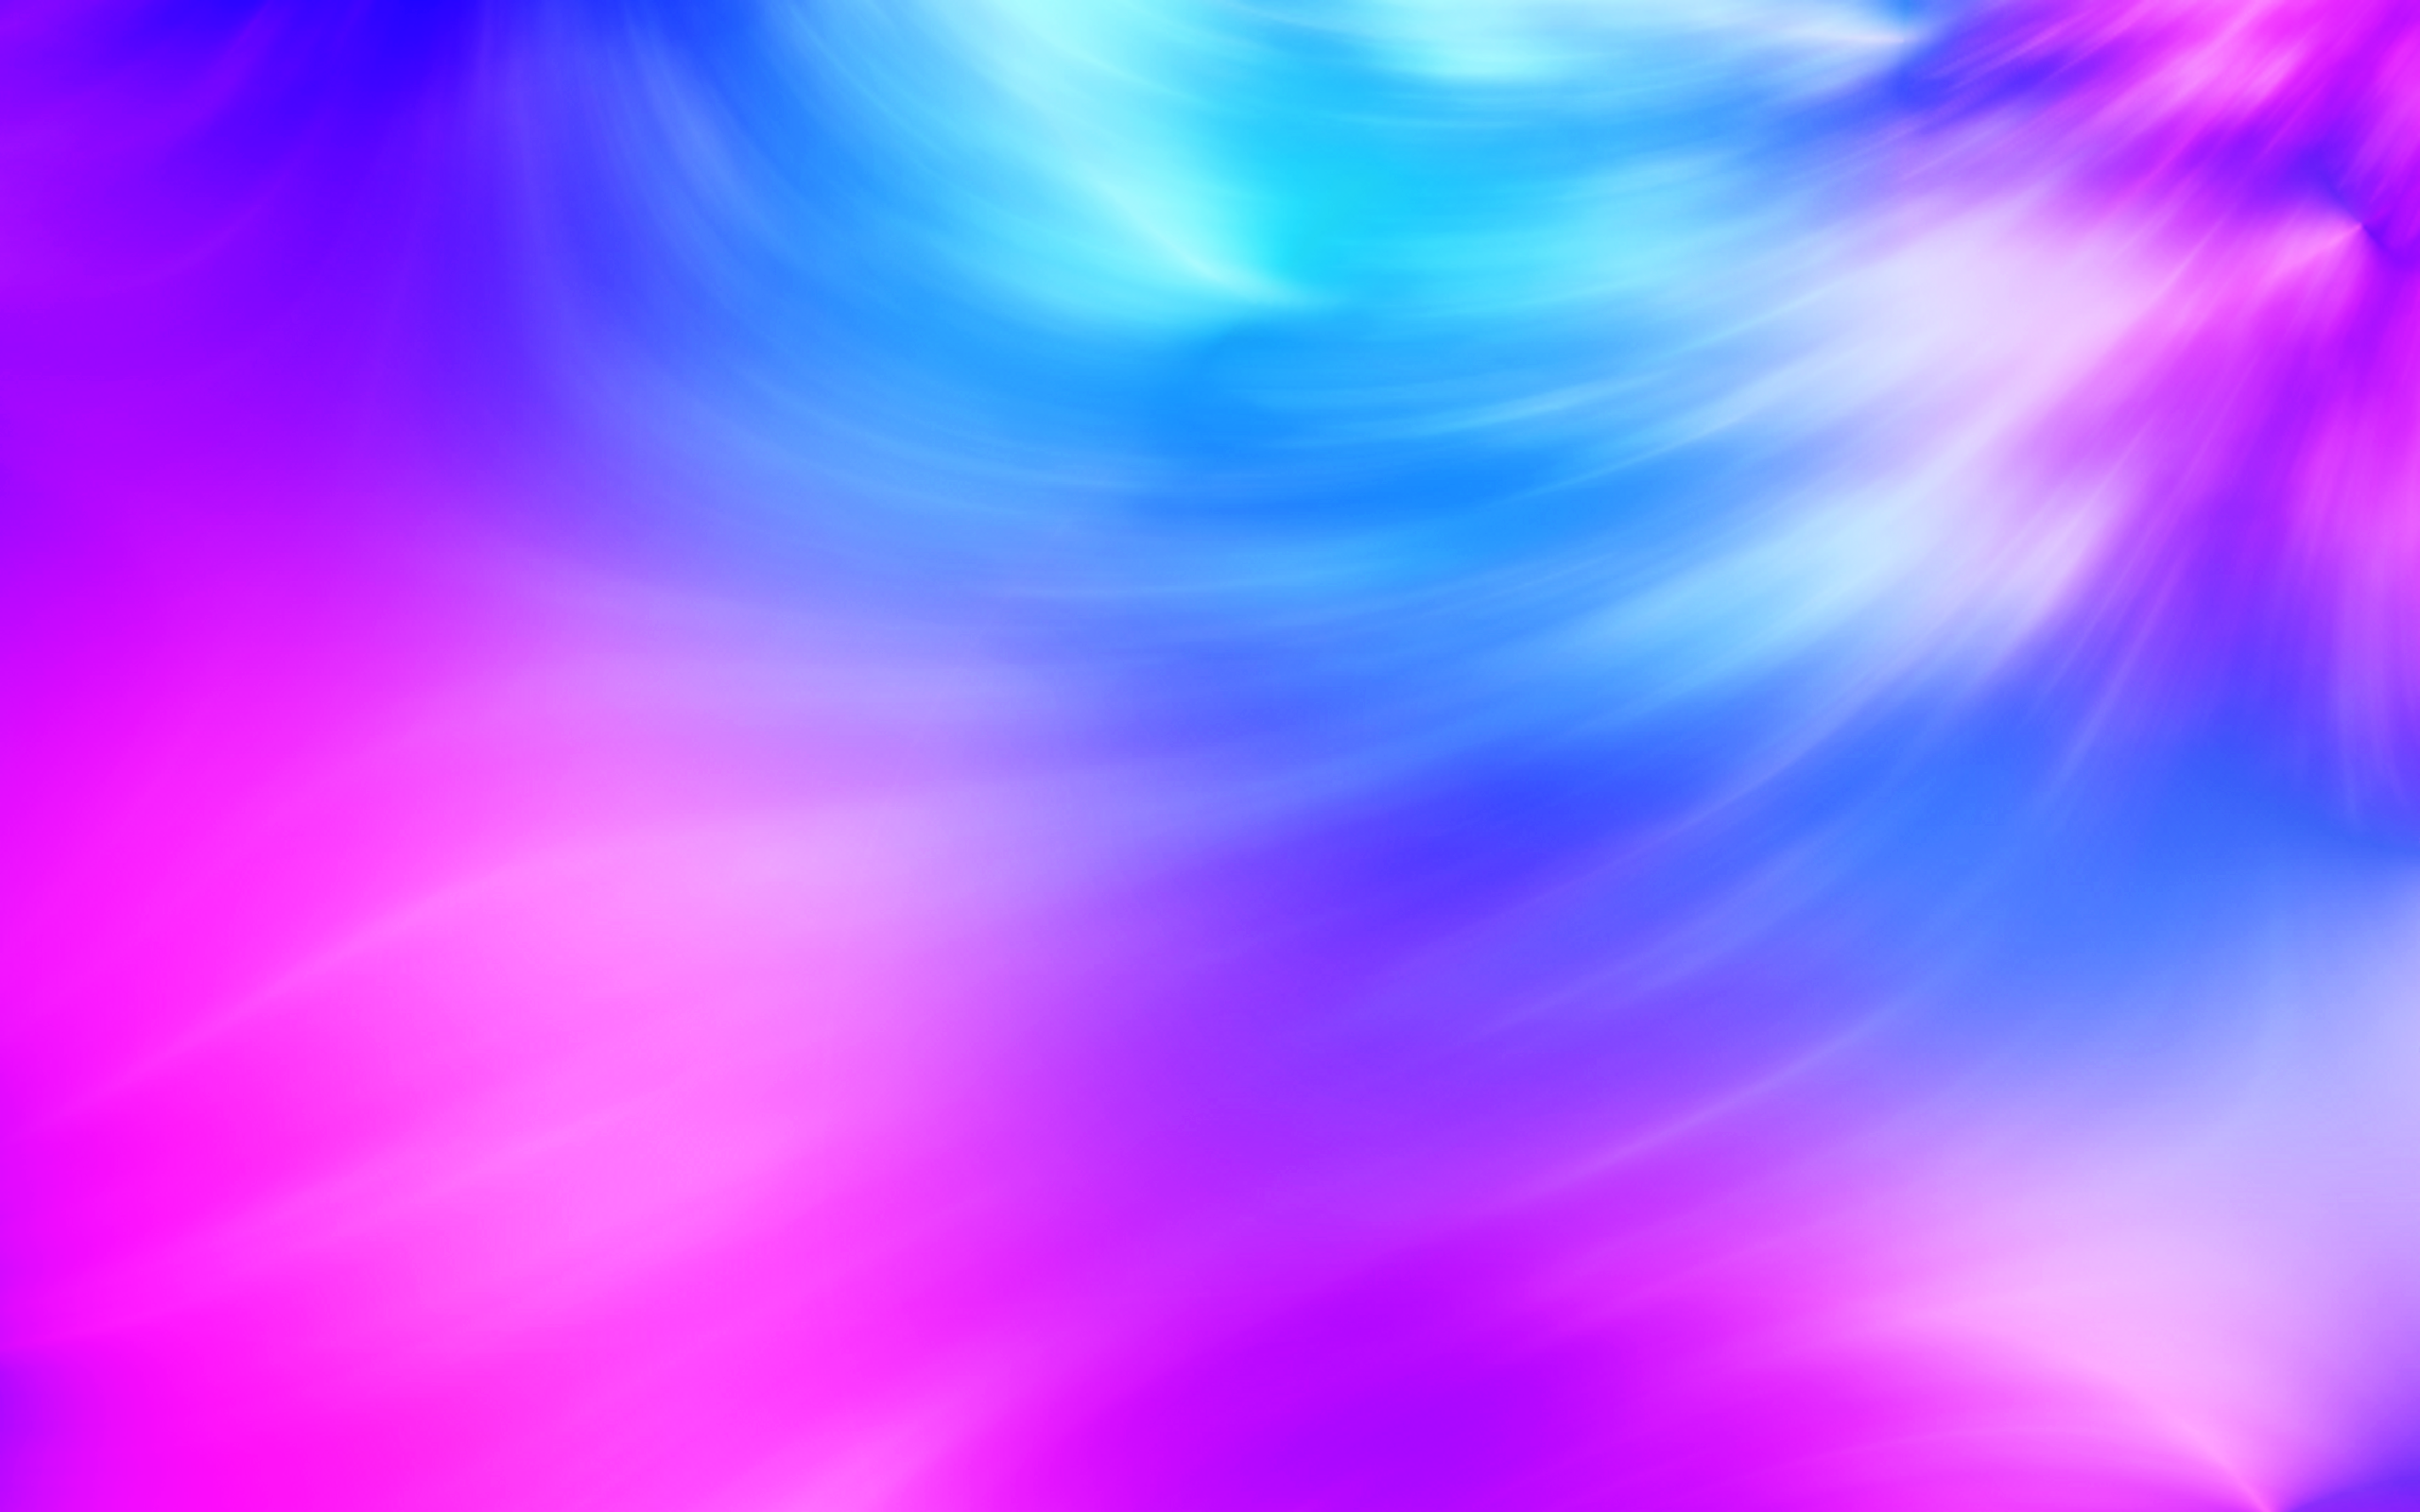 Pink And Blue PNG - 171077